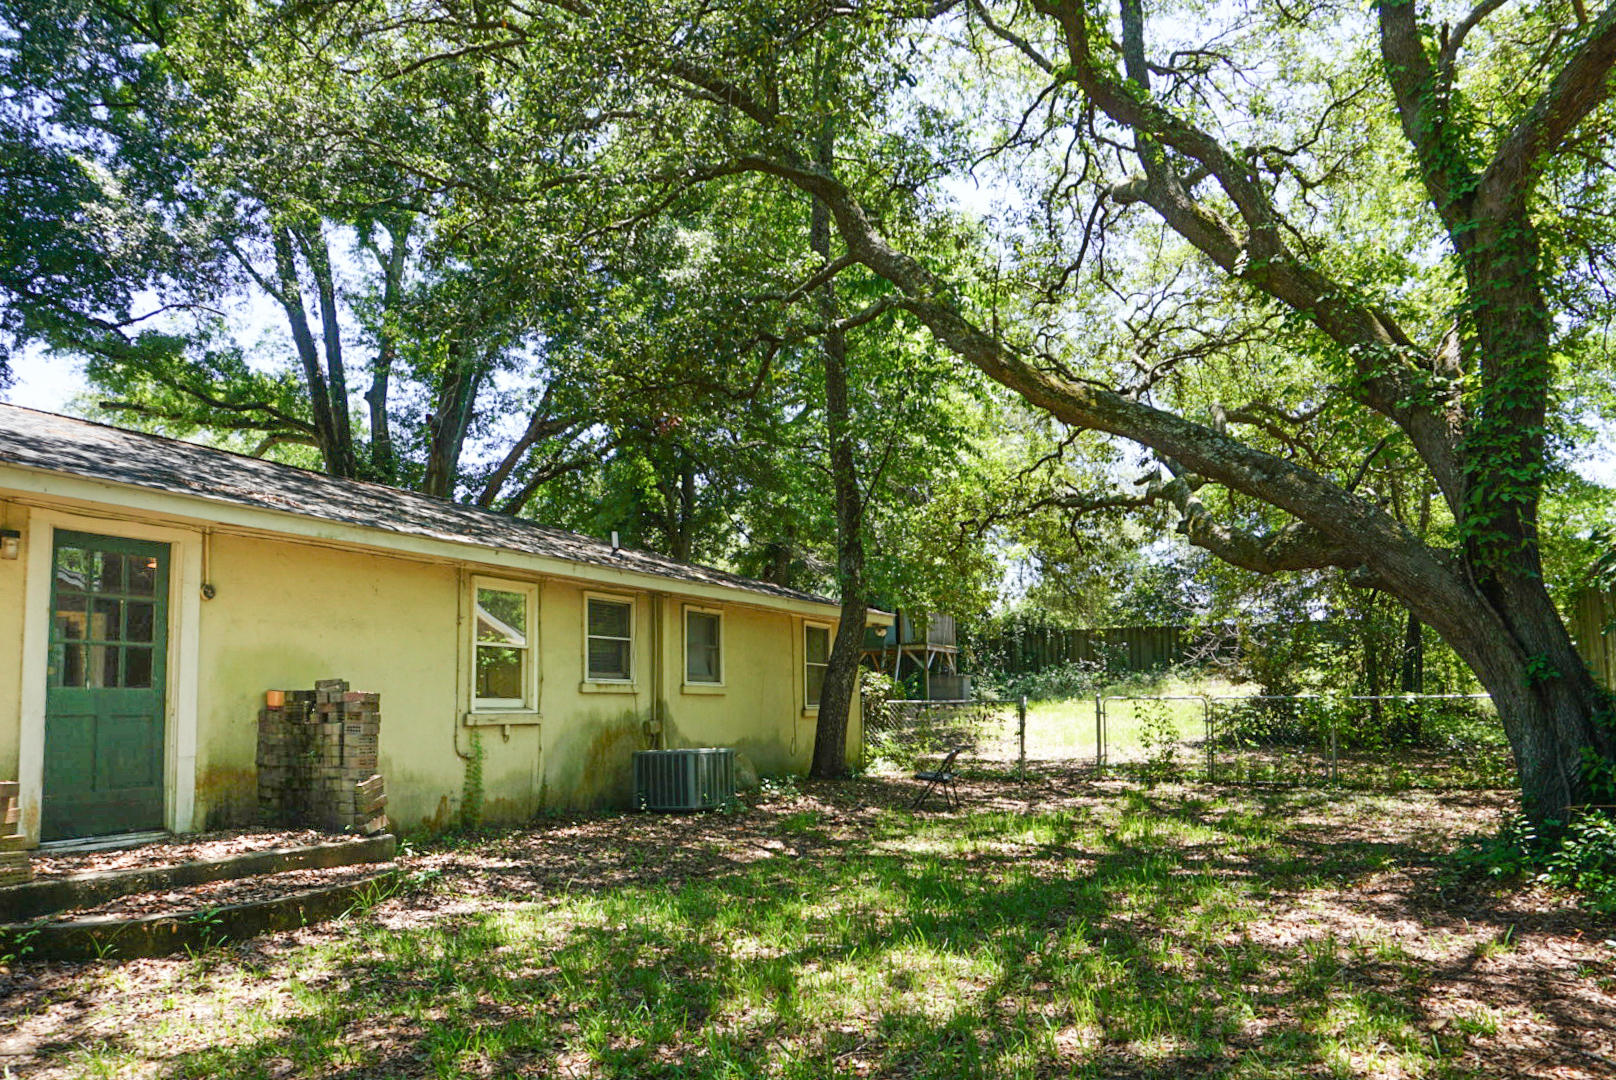 Old Mt Pleasant Homes For Sale - 610 King, Mount Pleasant, SC - 19